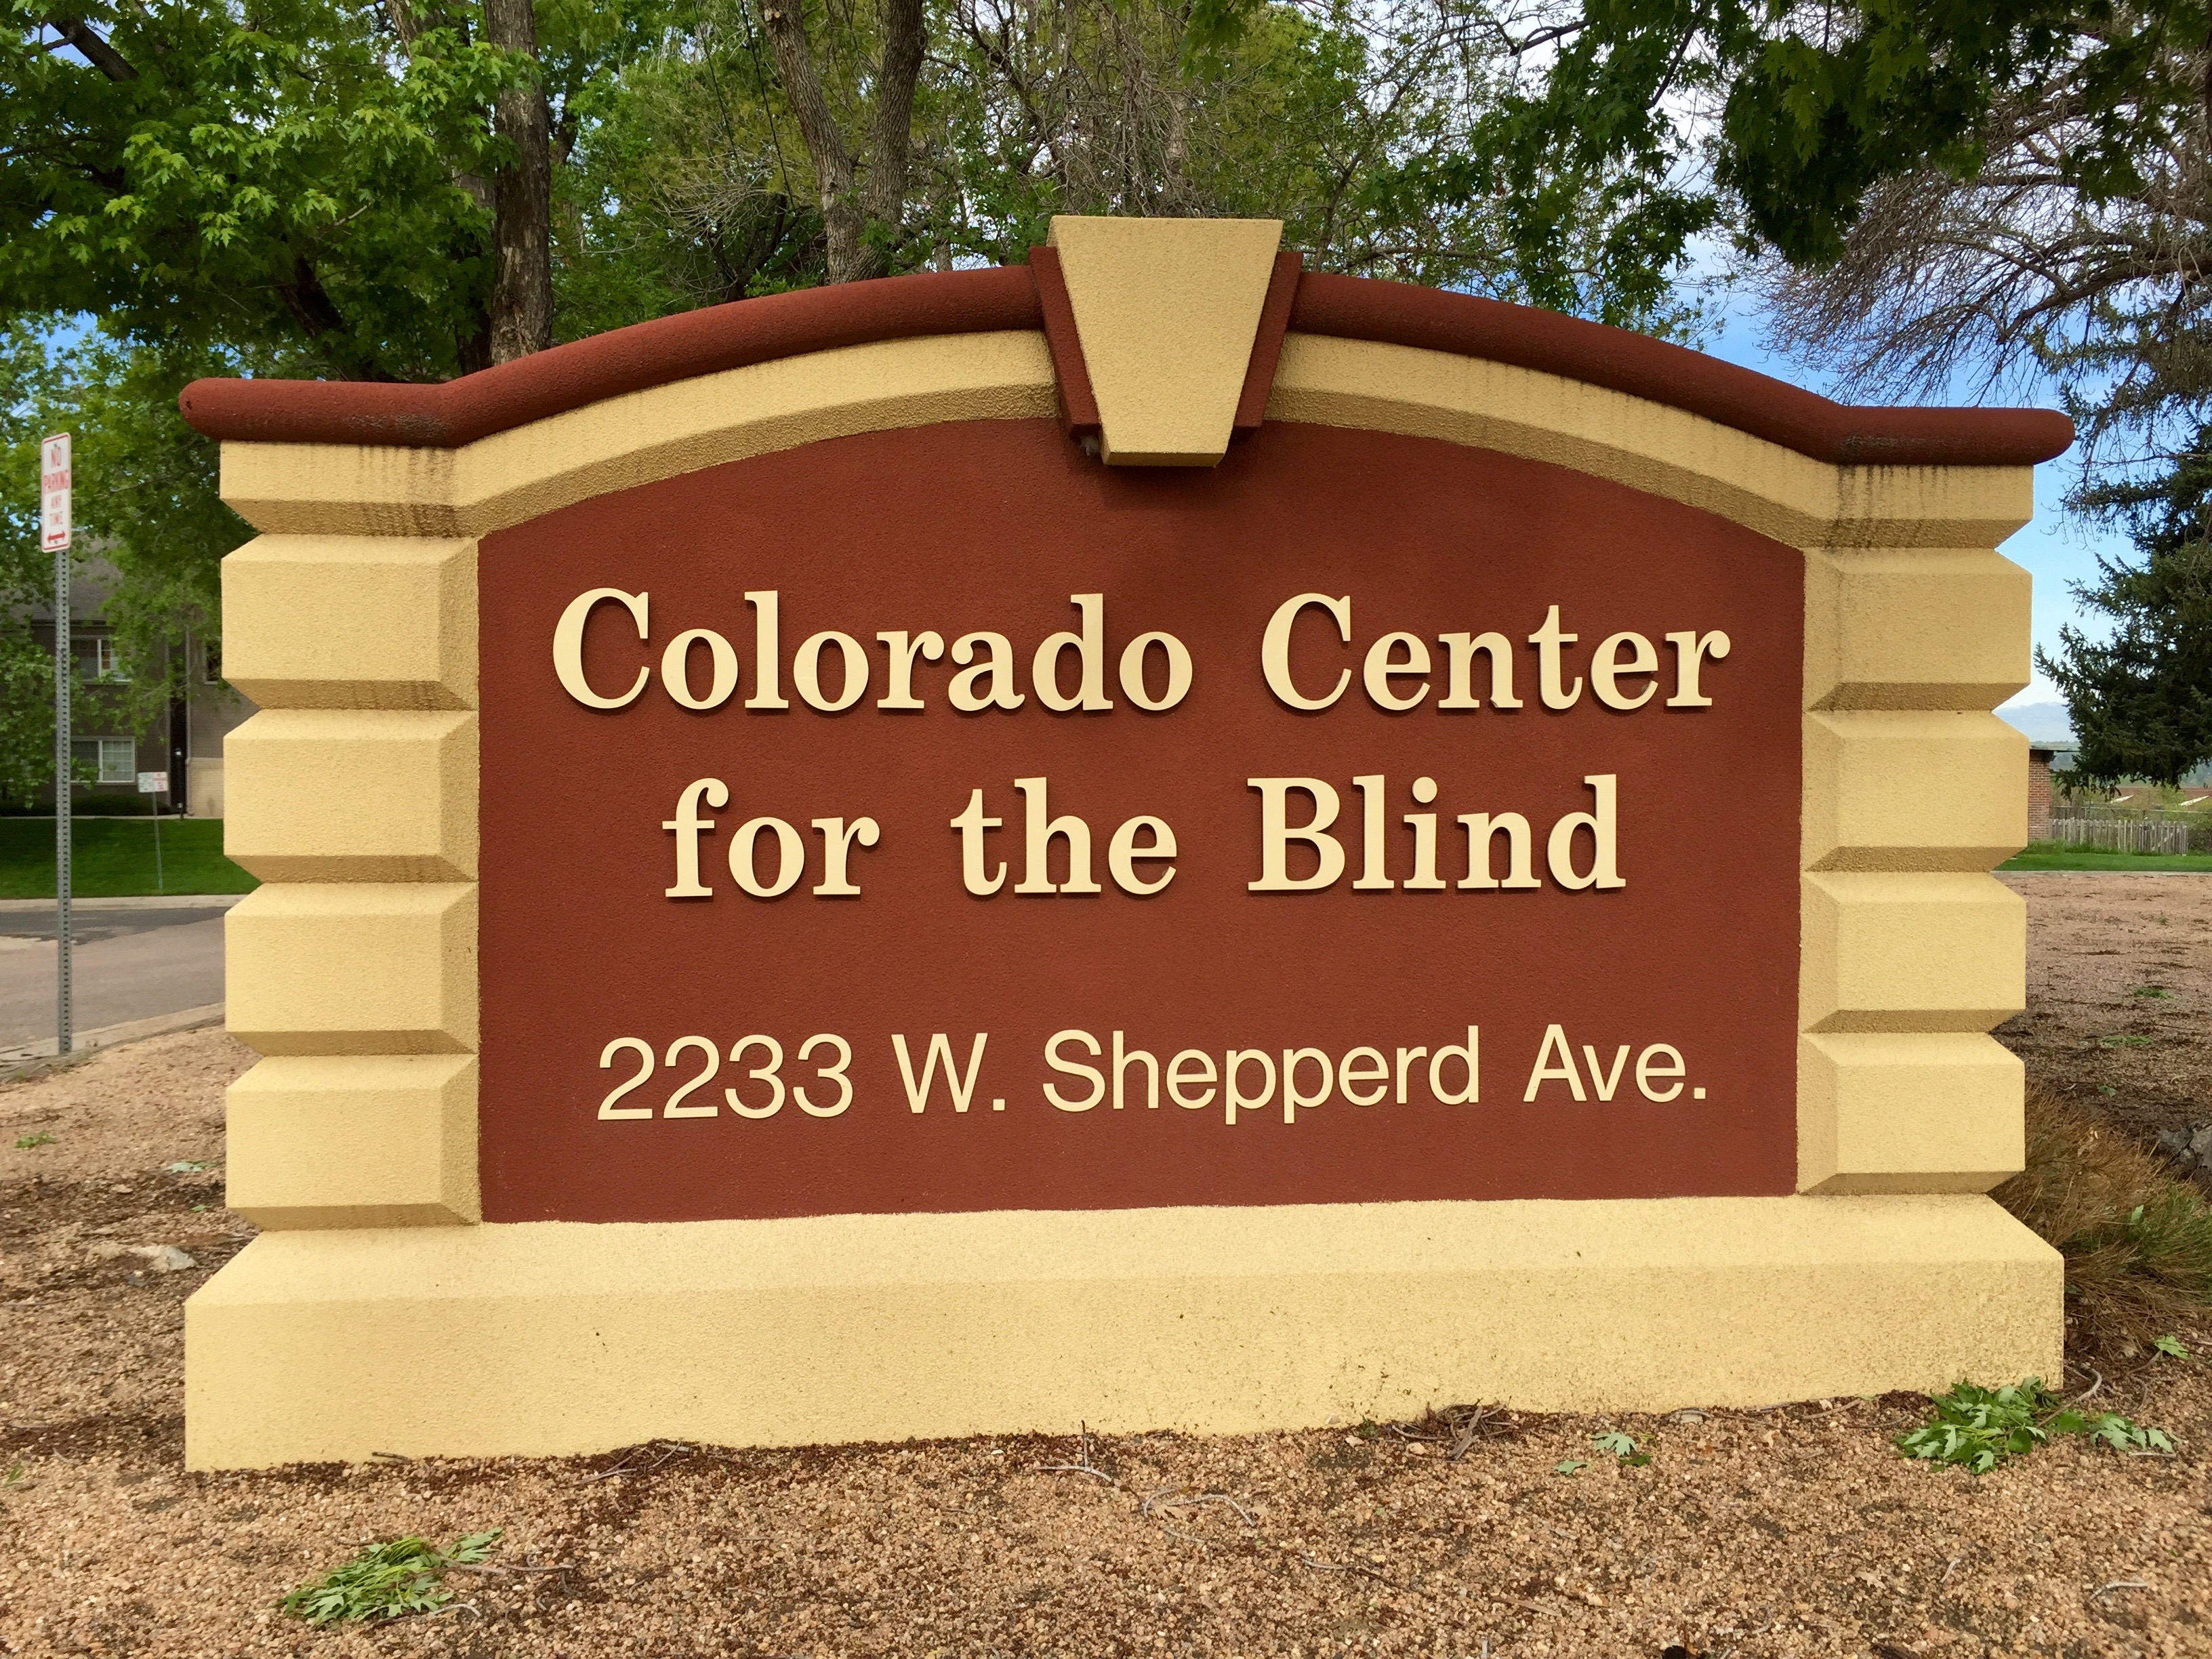 http://cocenter.org/wp-content/uploads/2015/06/CCB-Front-Sign.jpg